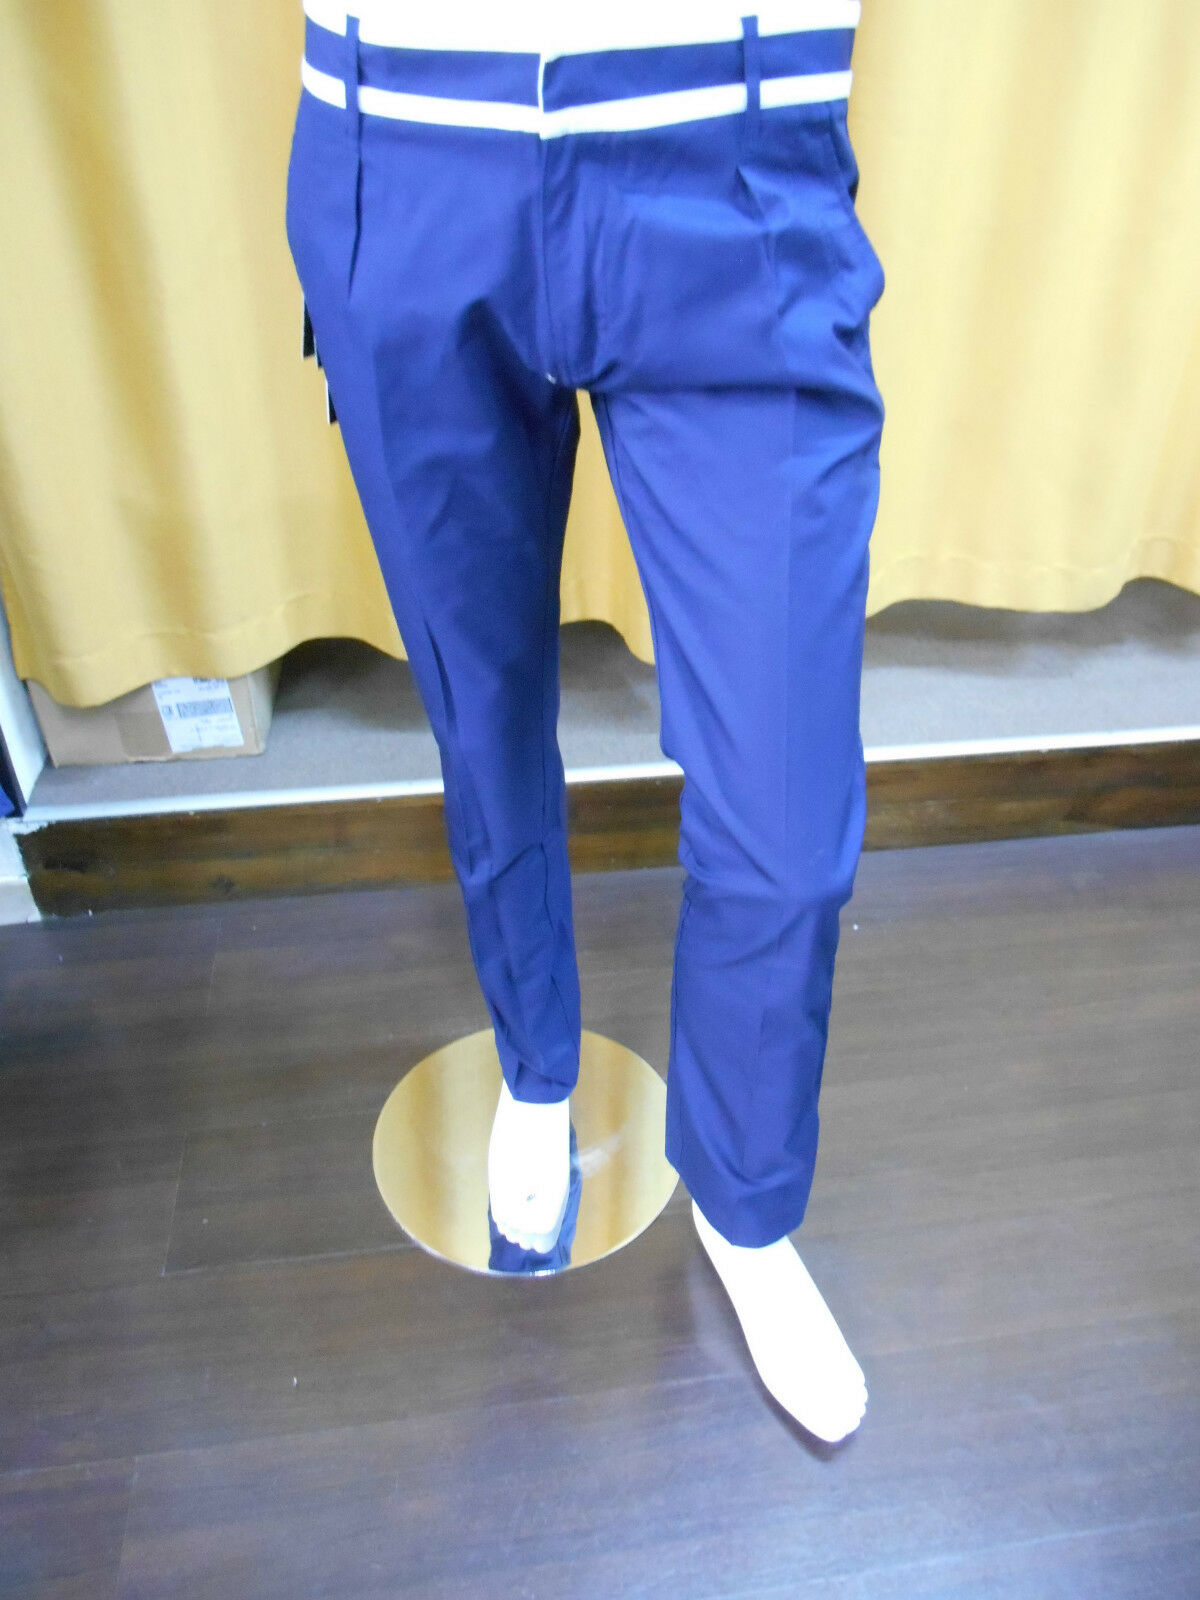 ANTONY MORATO MEN'S TROUSERS ART.MP2087 blueE PRICE